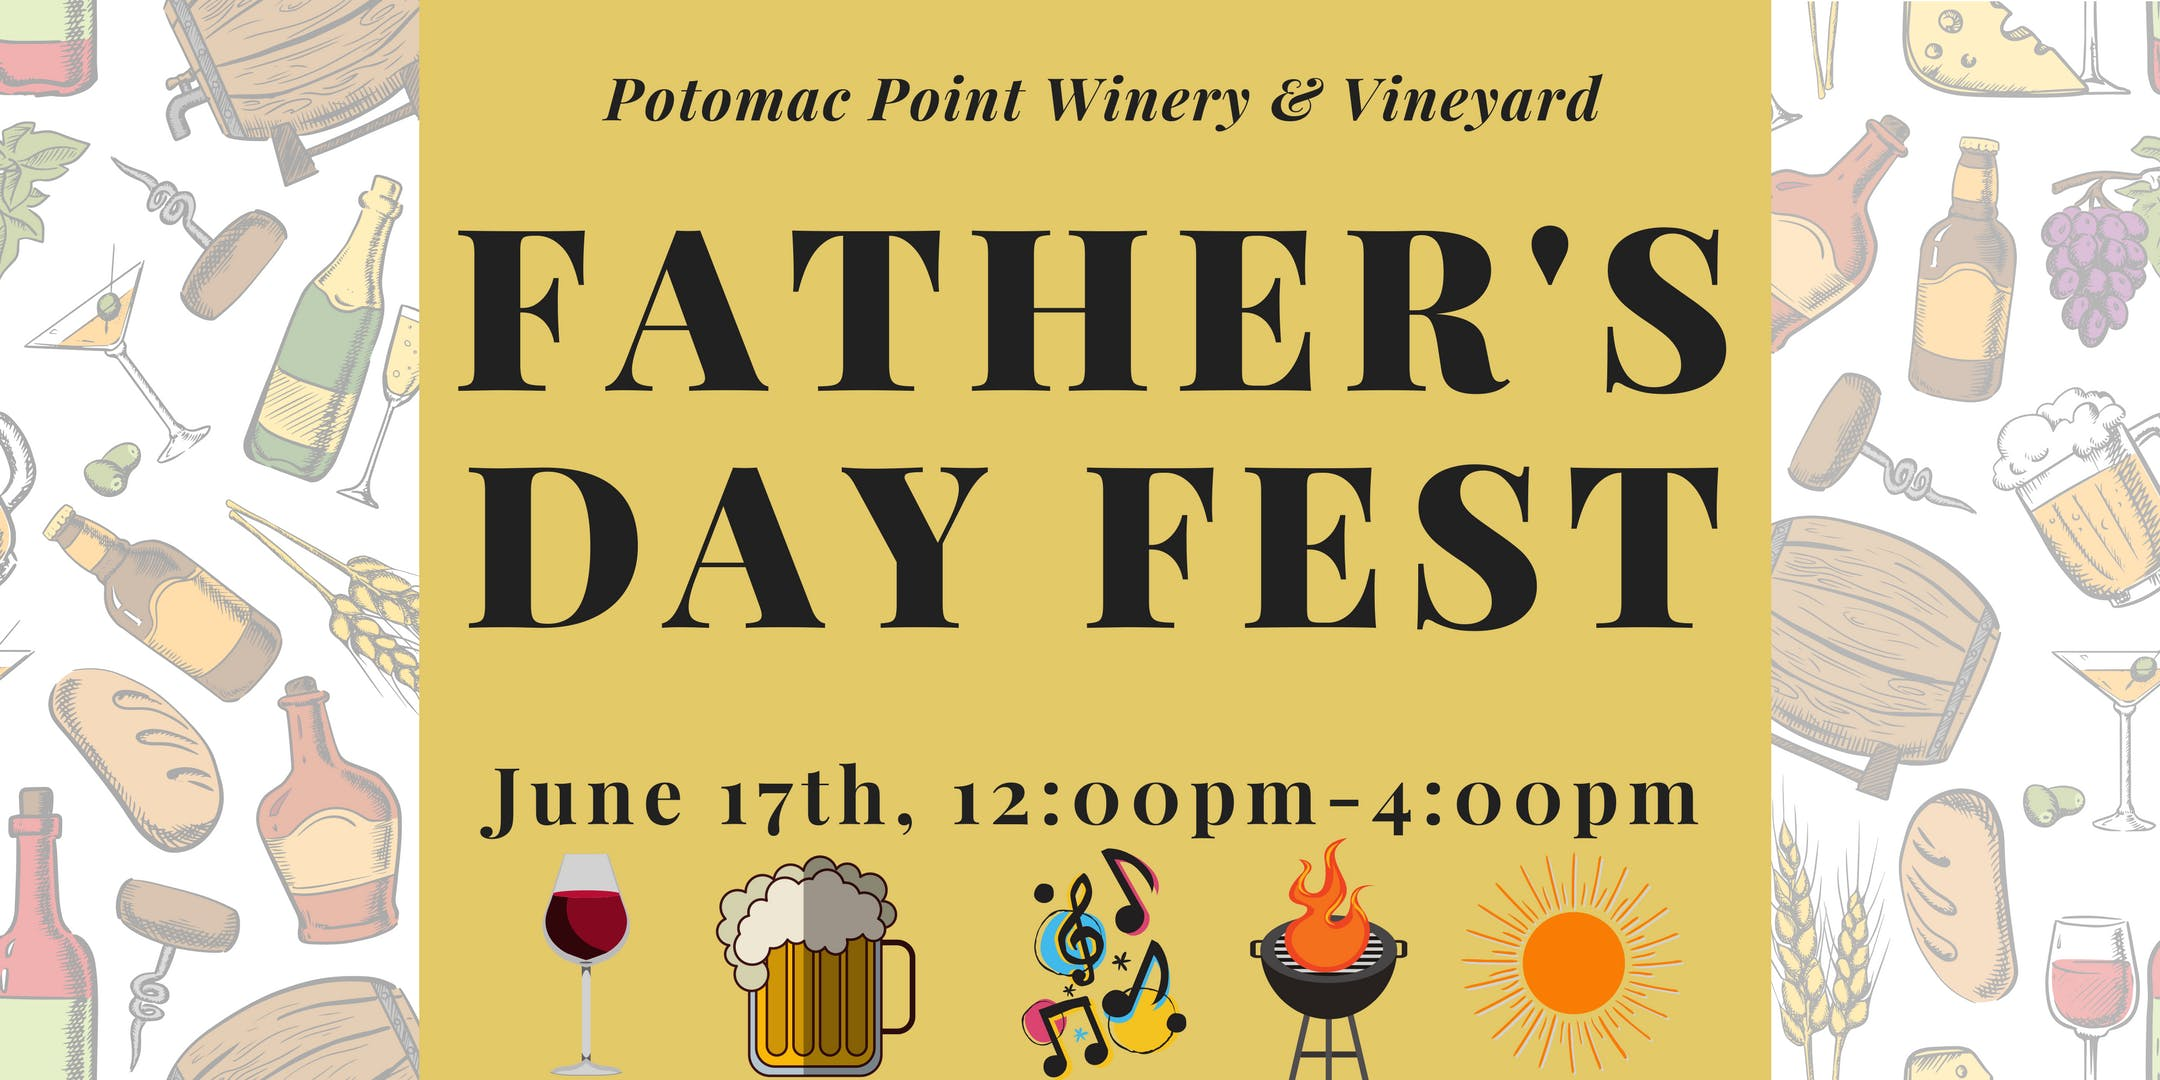 Fathers Day Fest